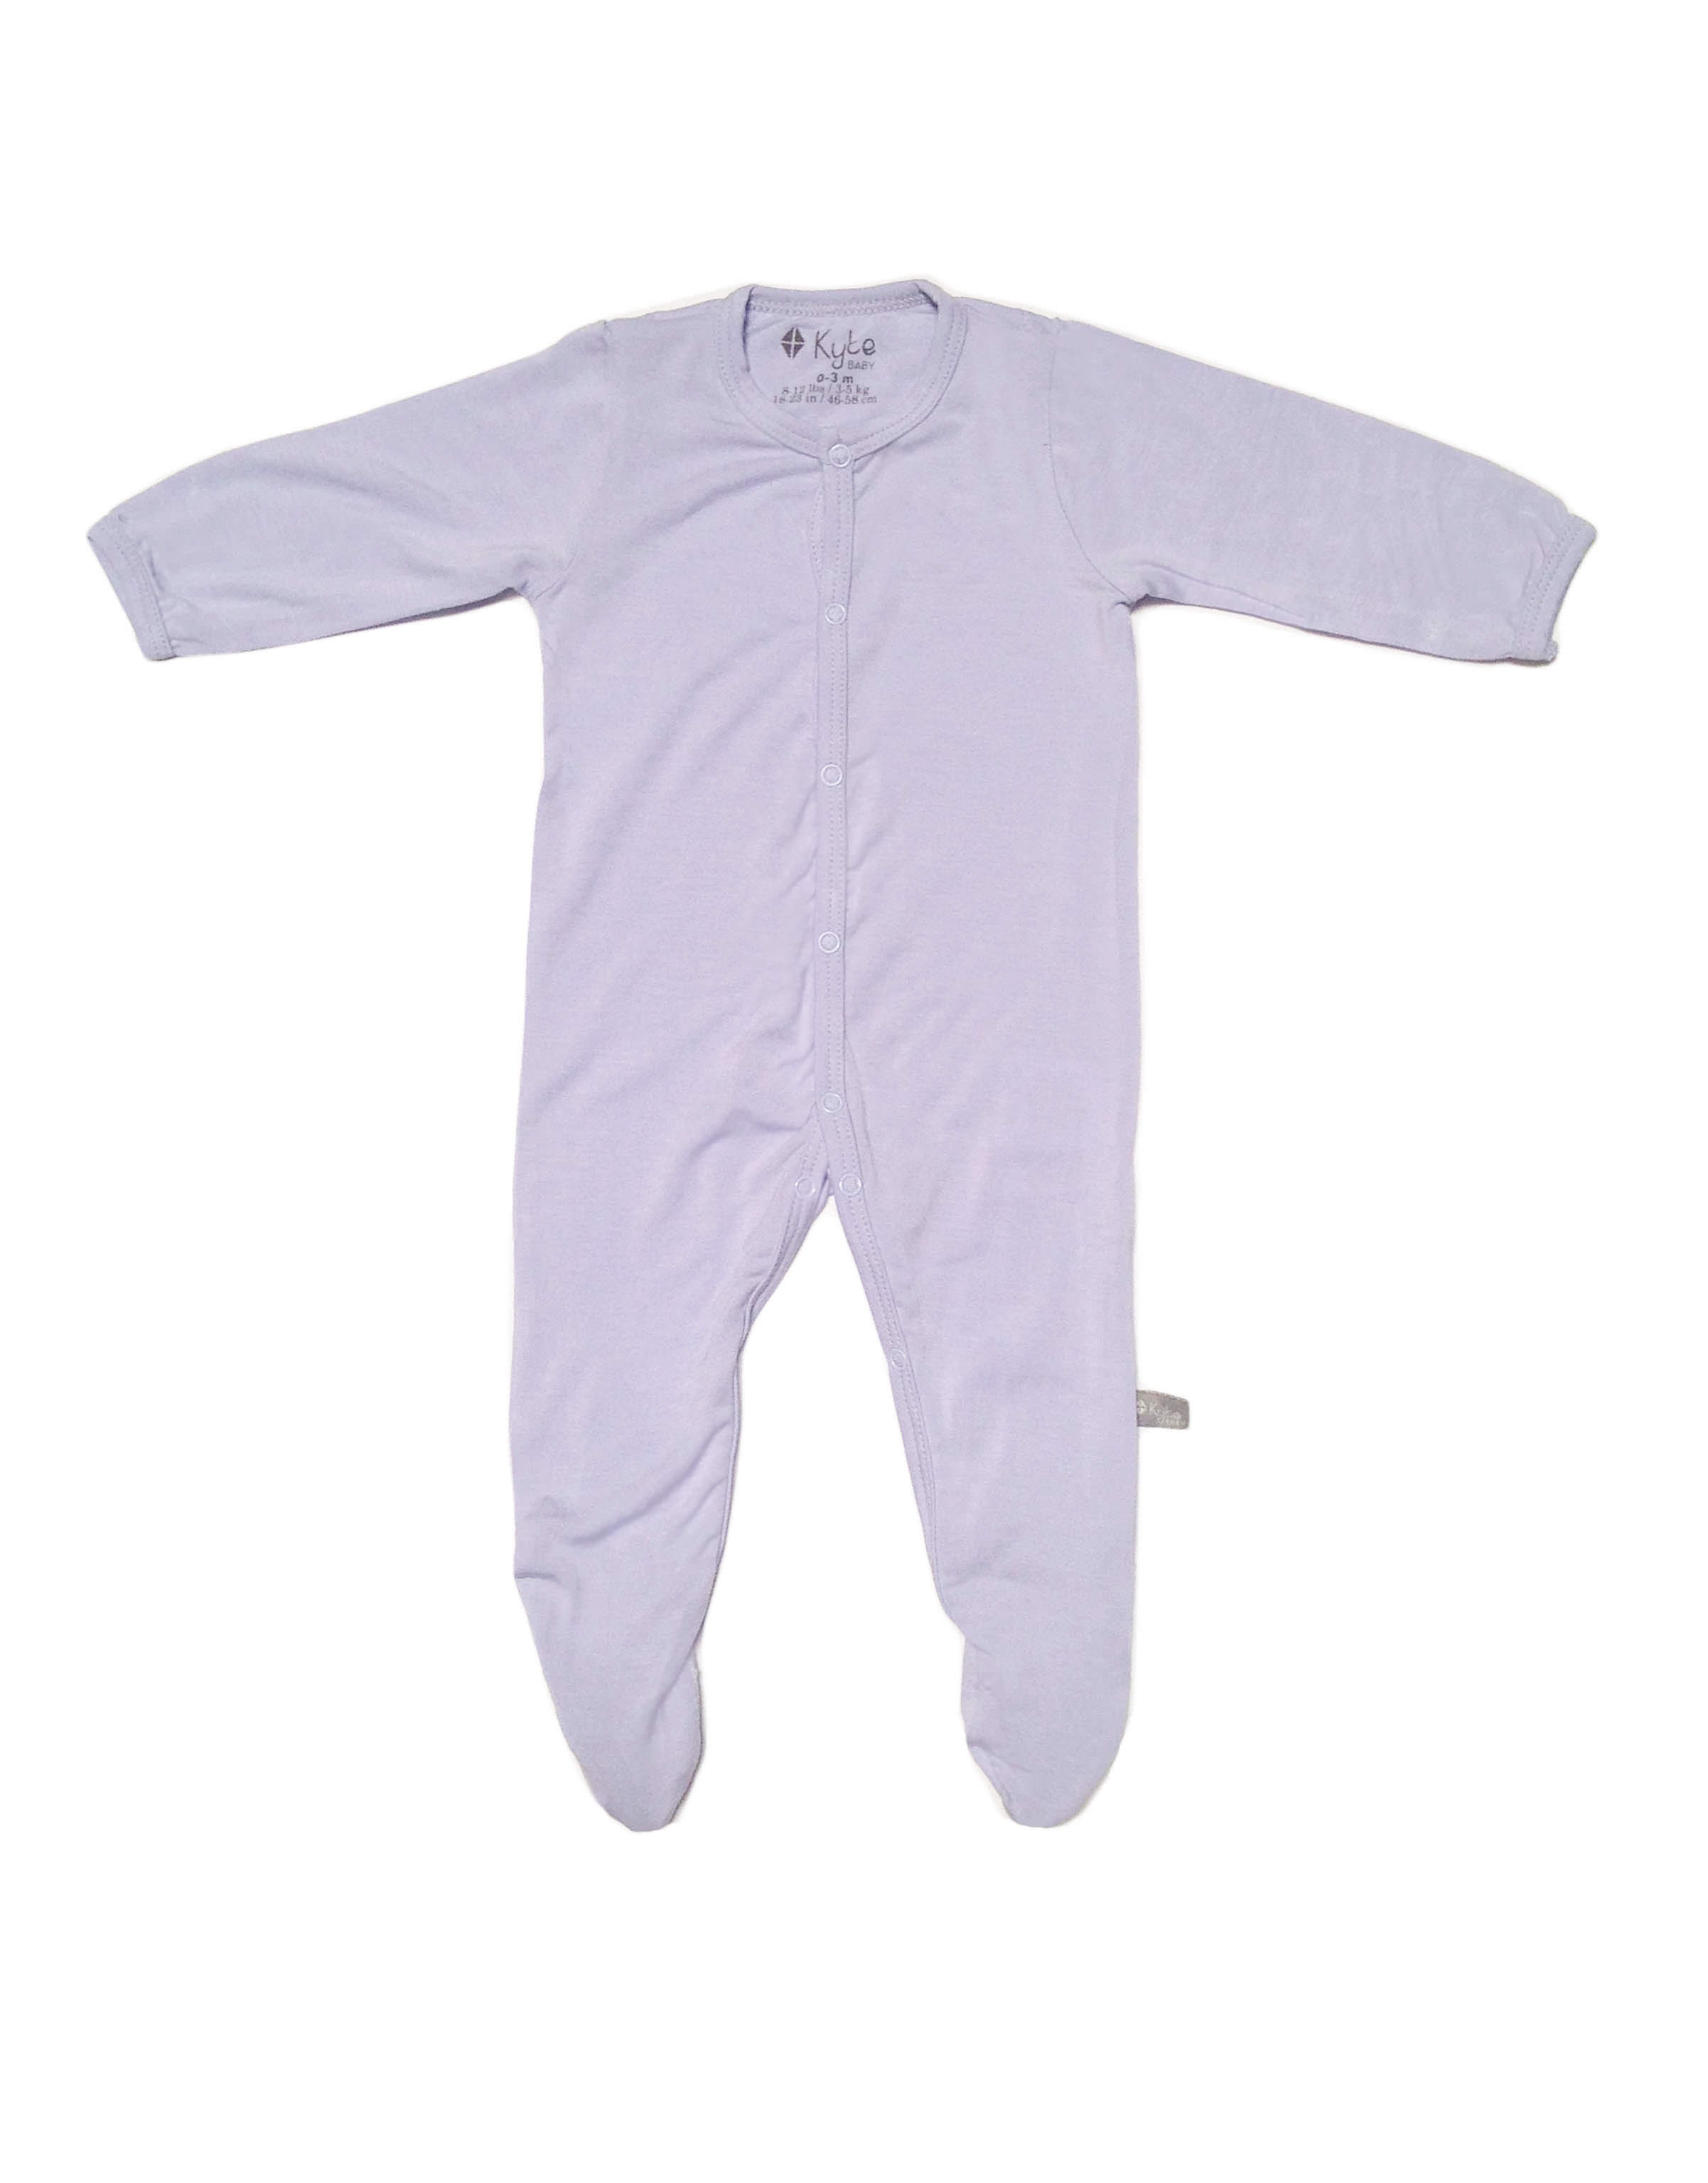 Footie in Lilac (6-12mo)